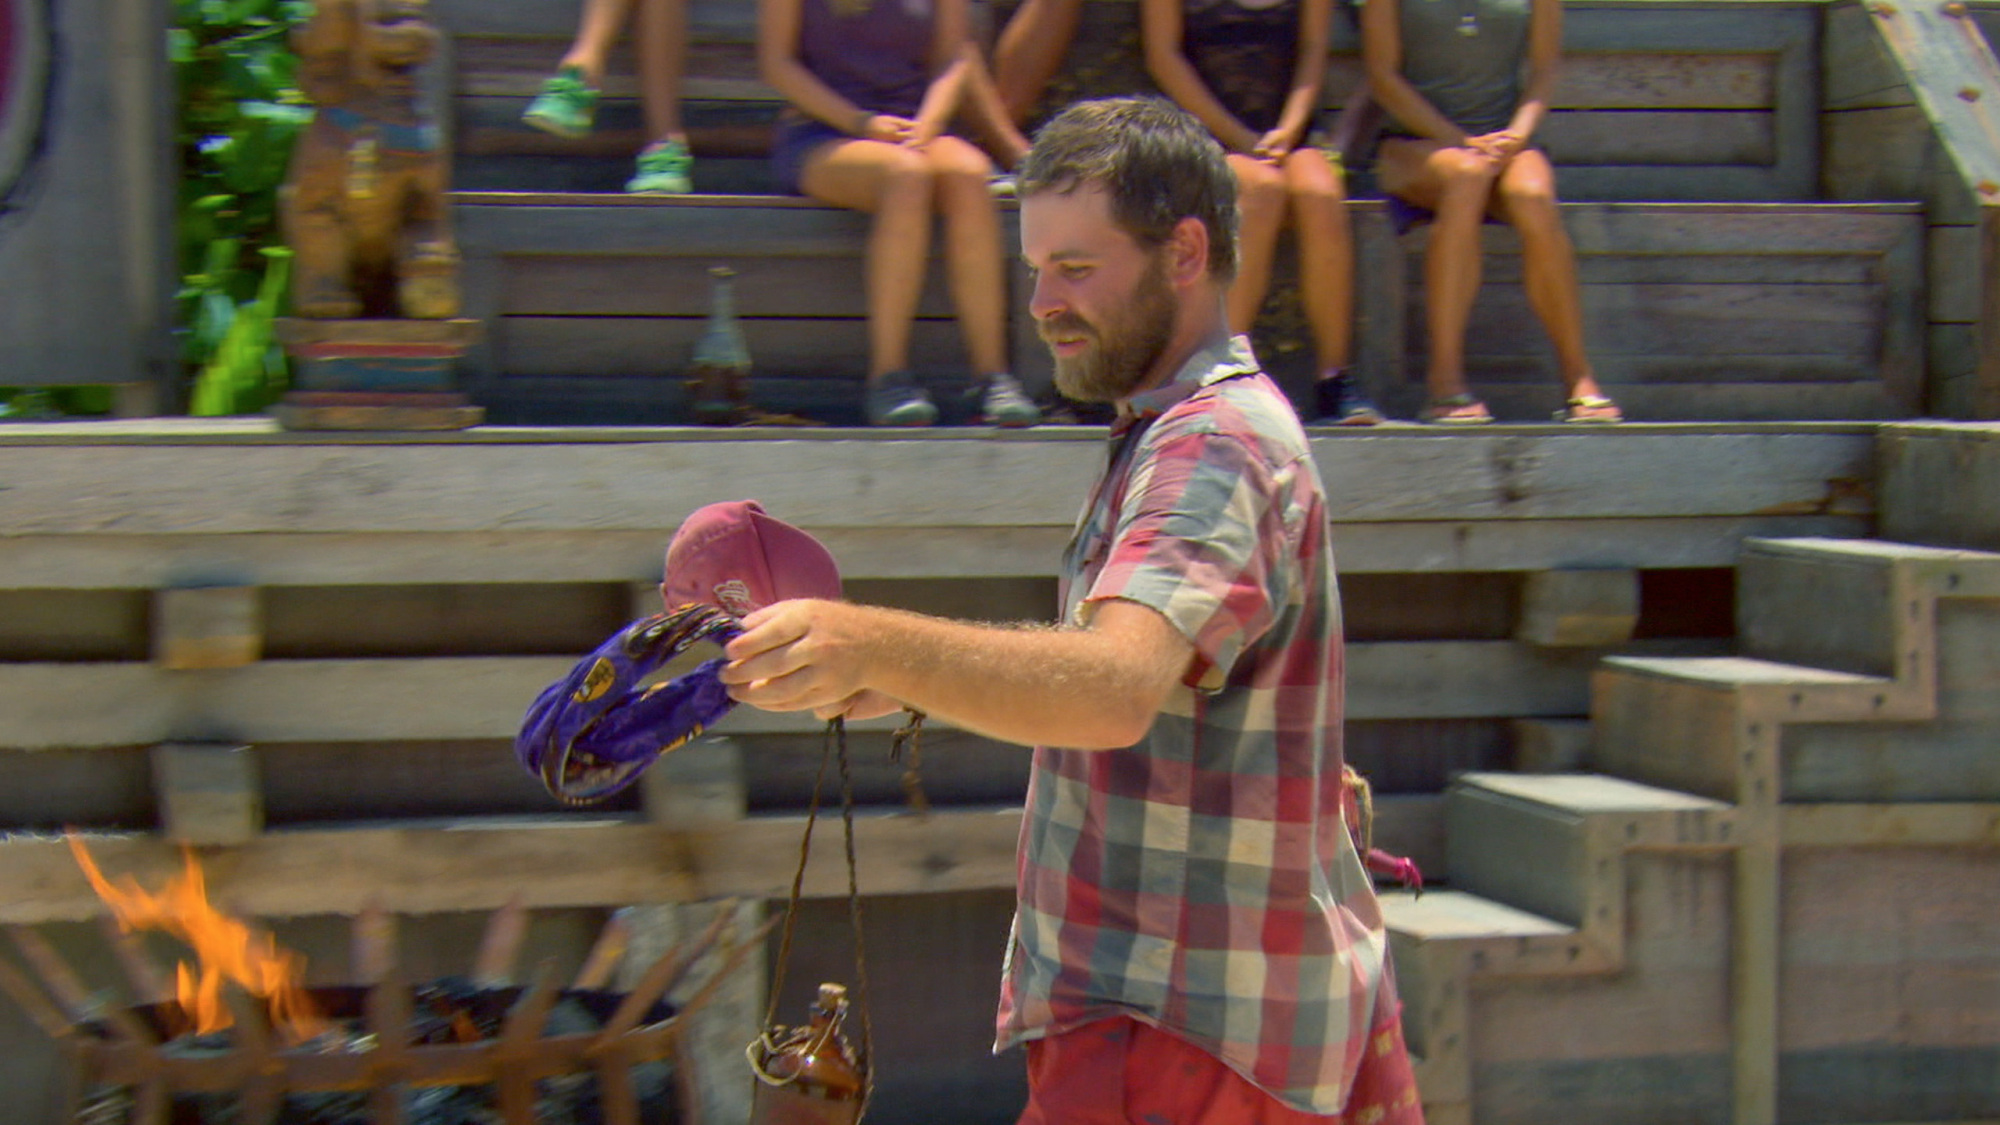 Caleb tosses his buff in the fire in Season 27 Episode 12